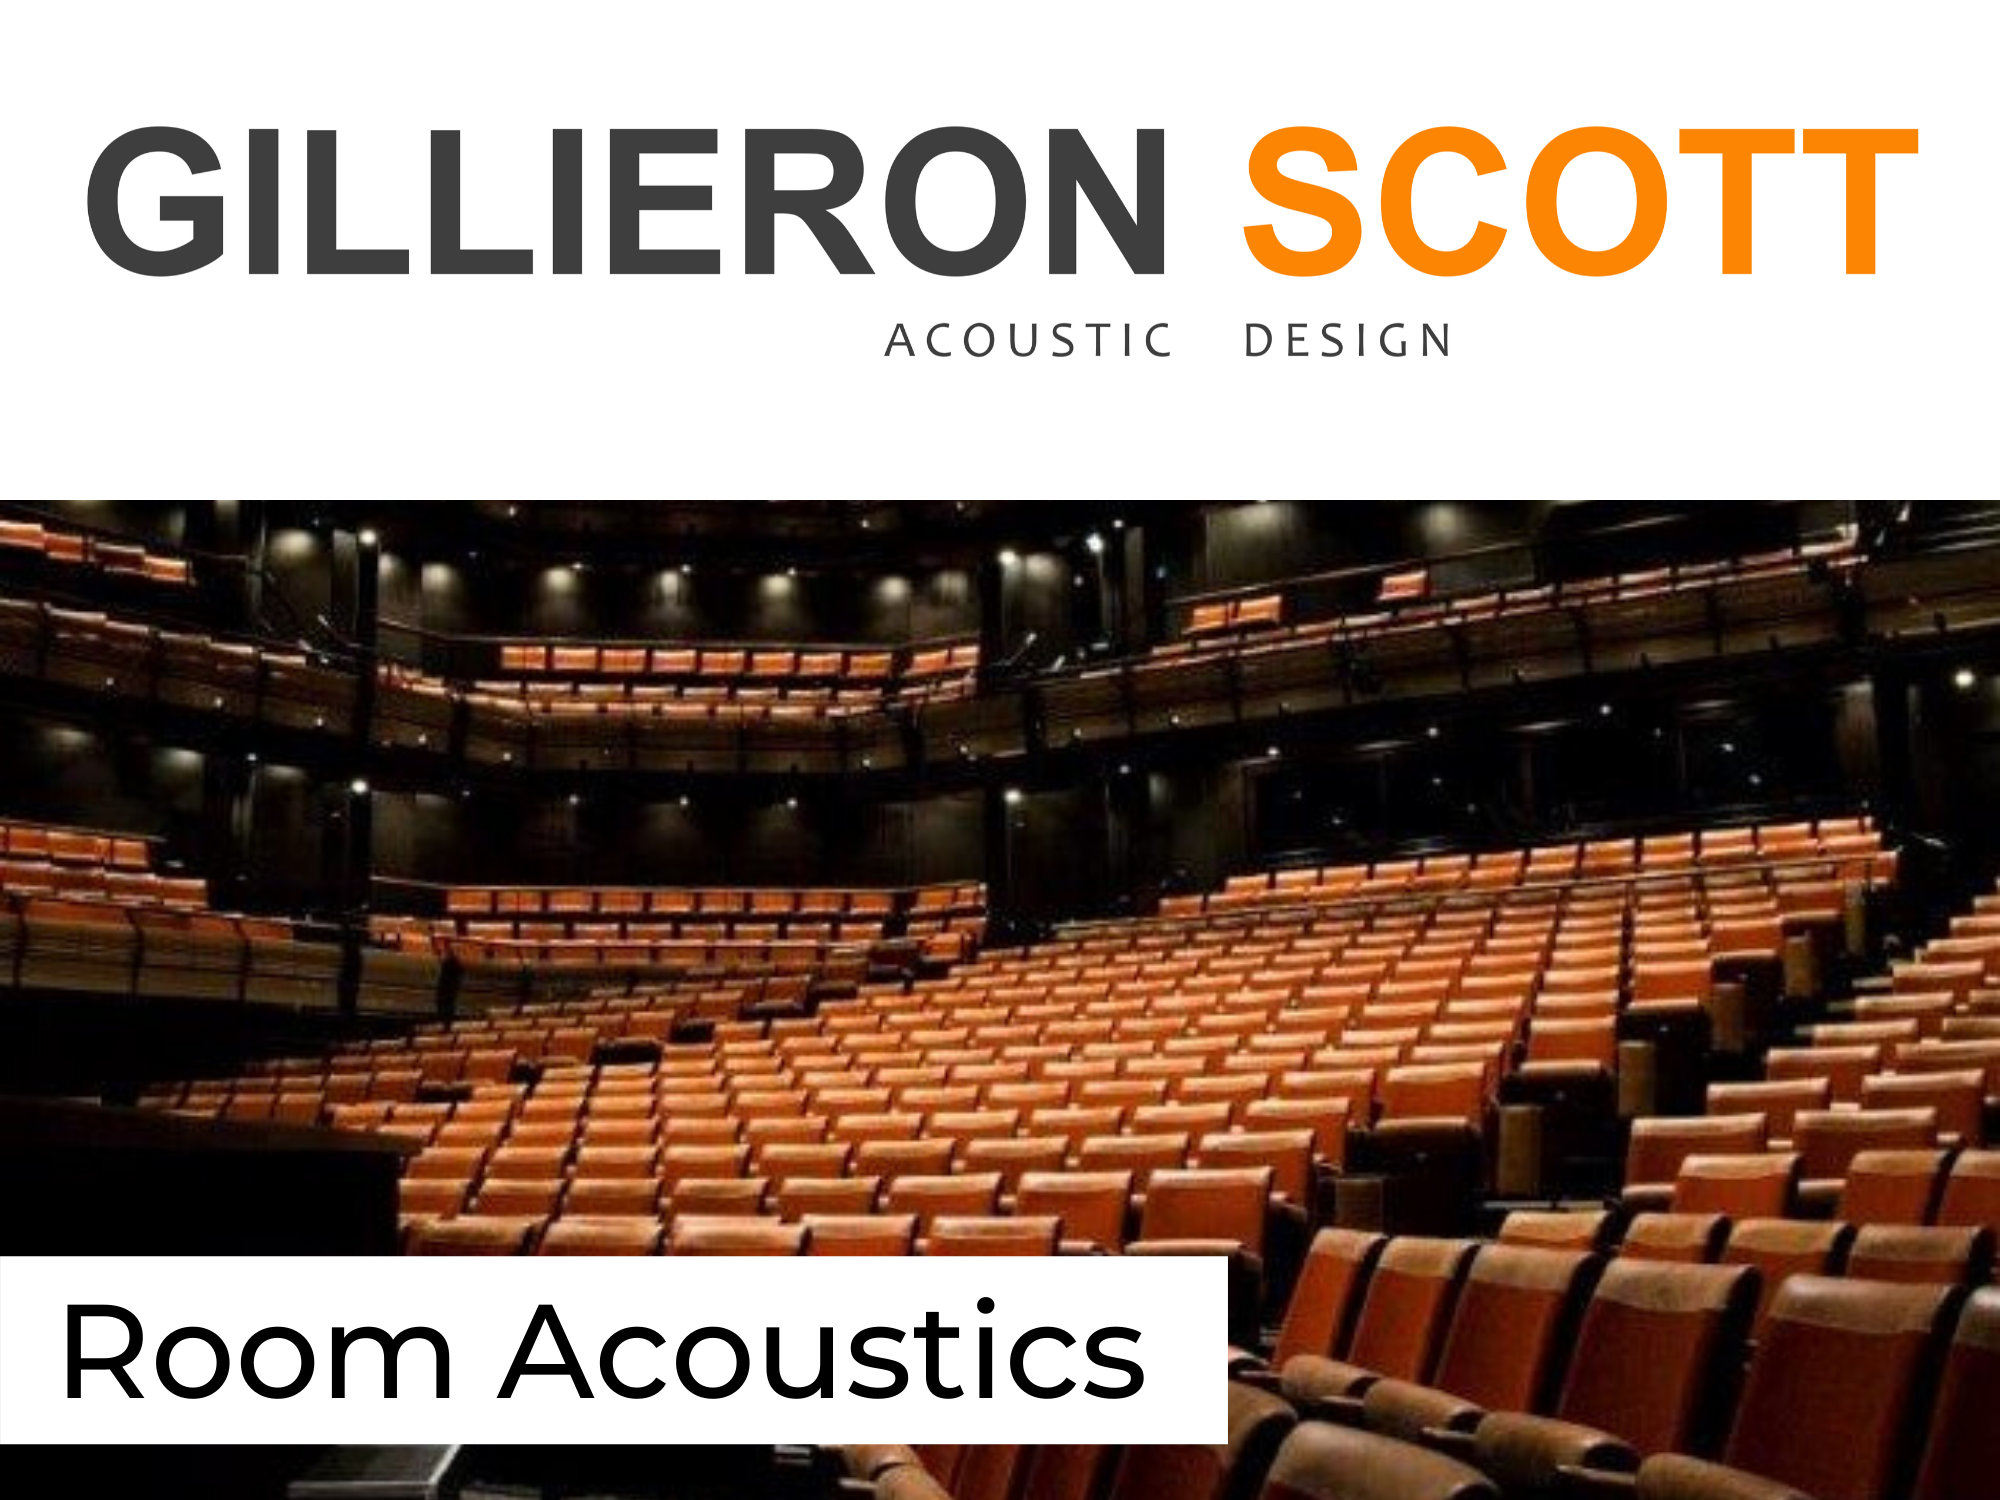 Room Acoustics Acoustic Consulting Services London